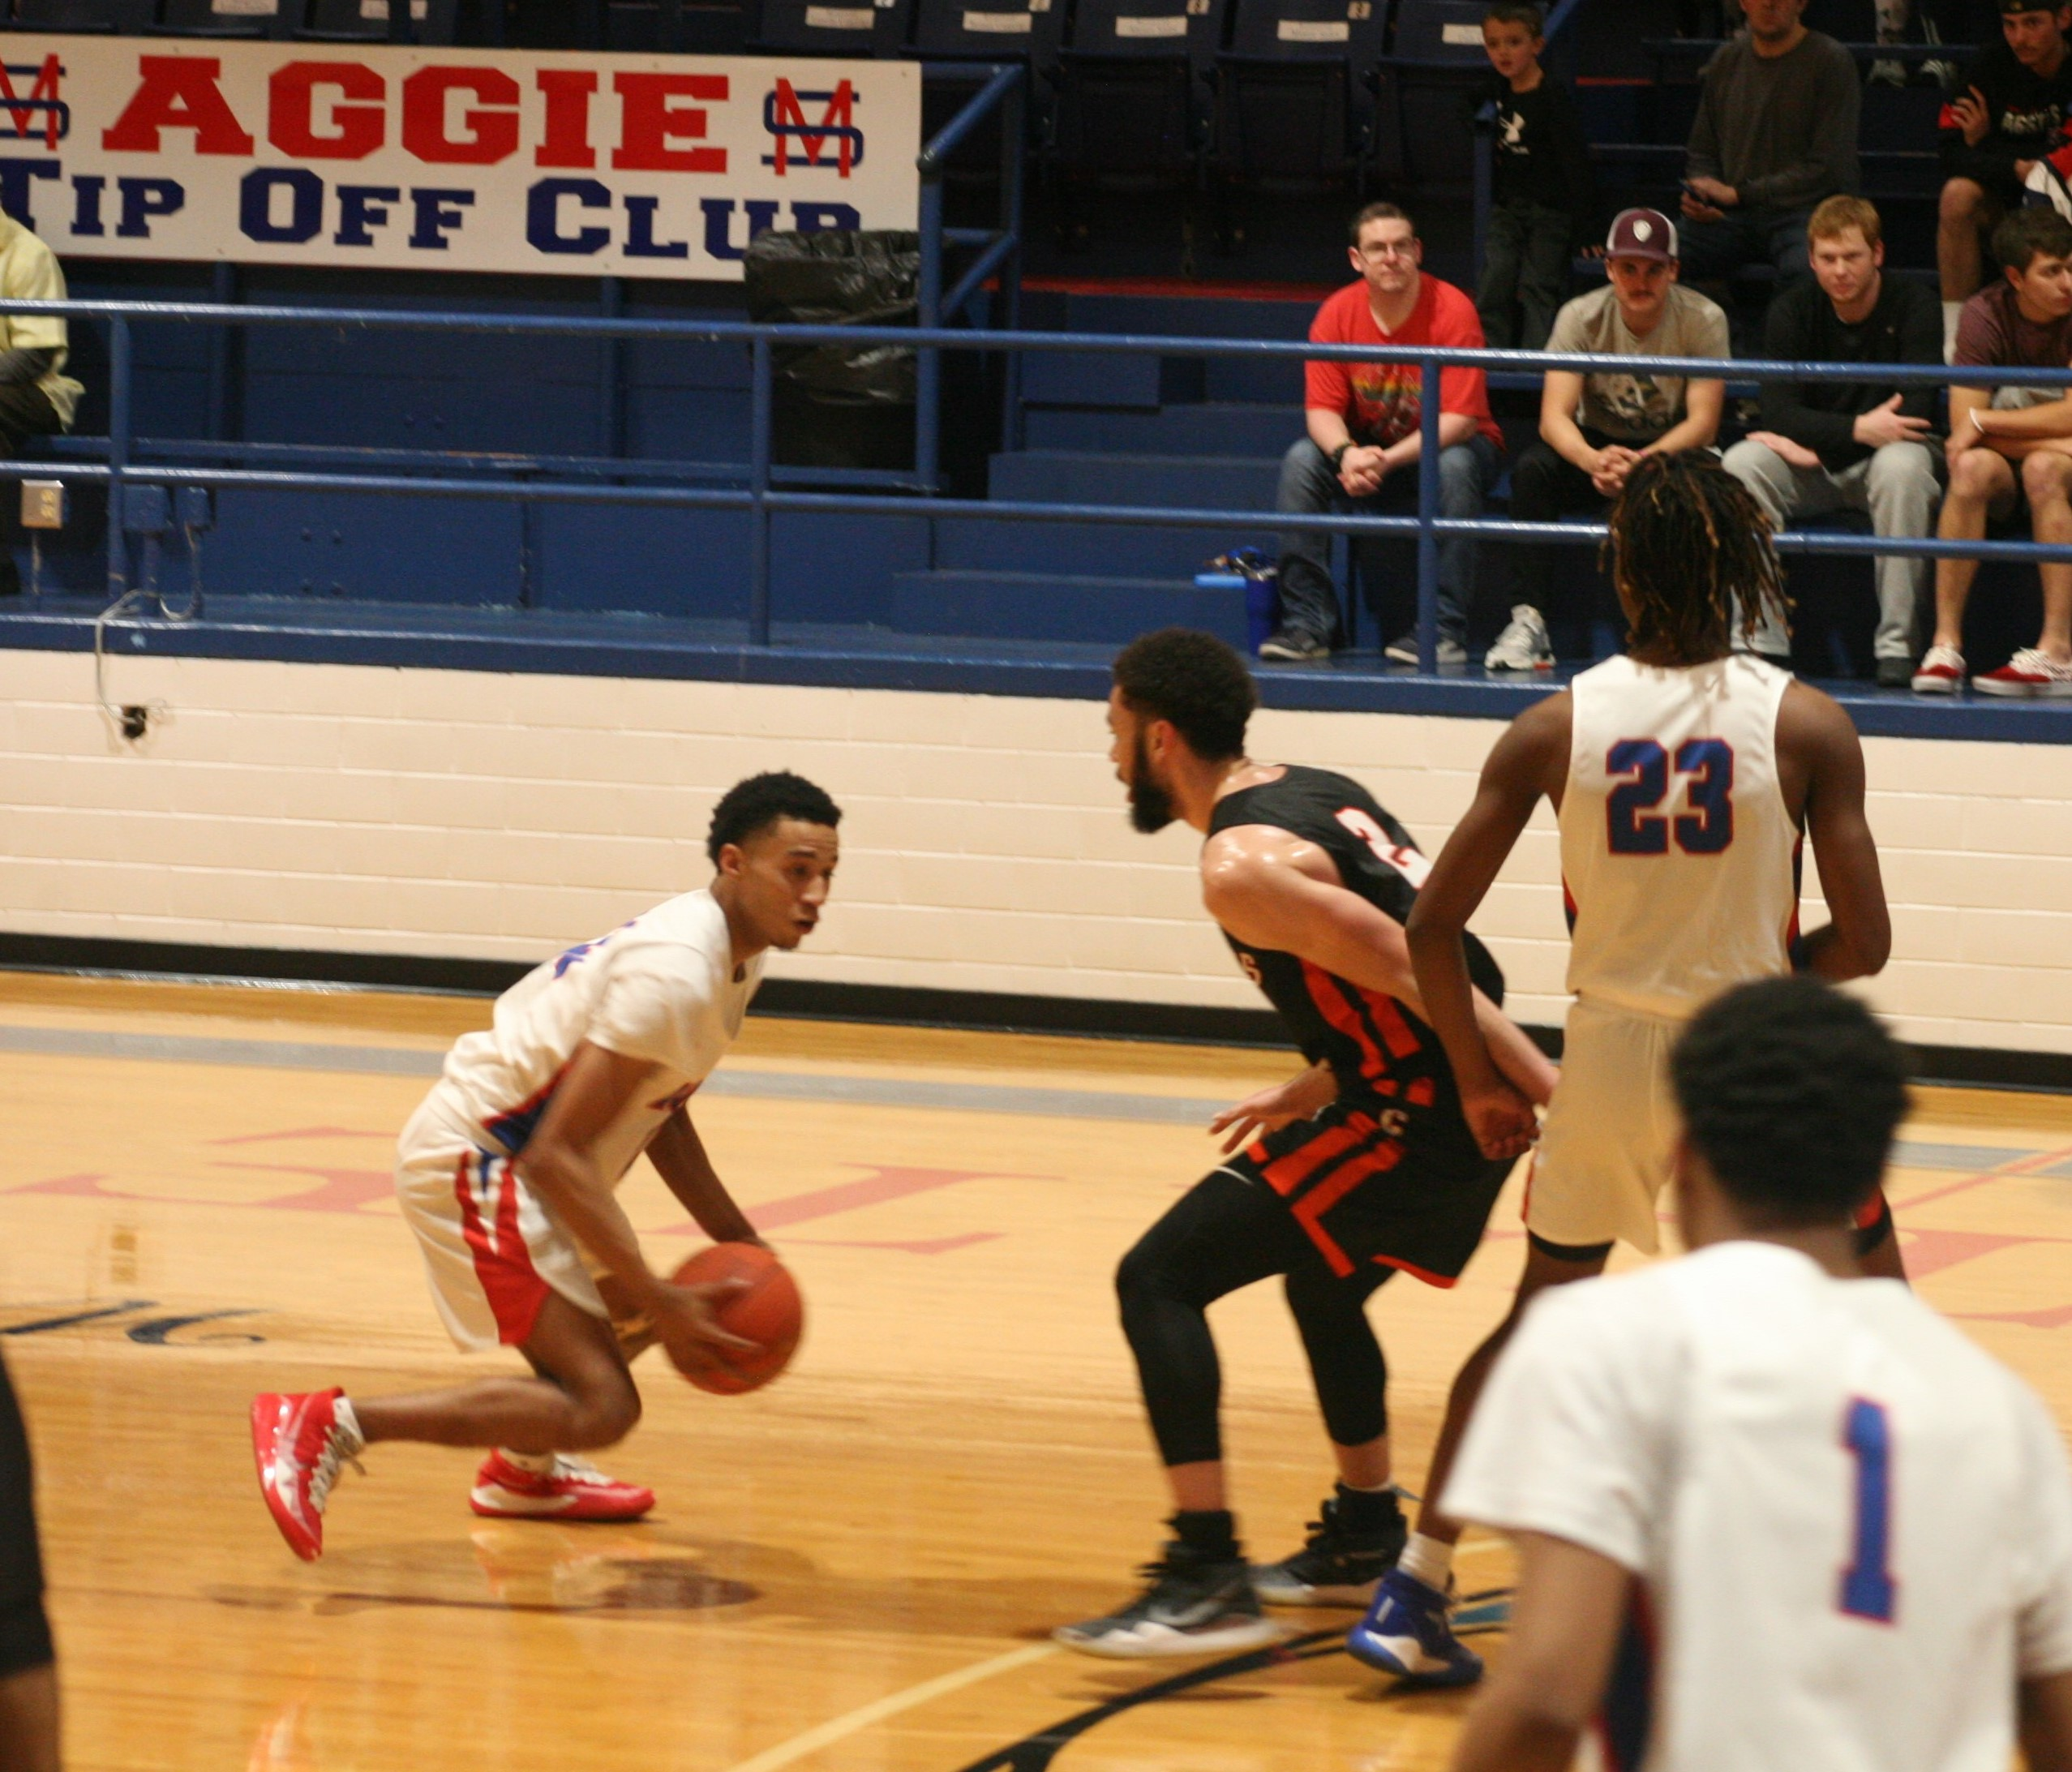 Late surge propels MSC men's basketball team to win, remain undefeated in regional play